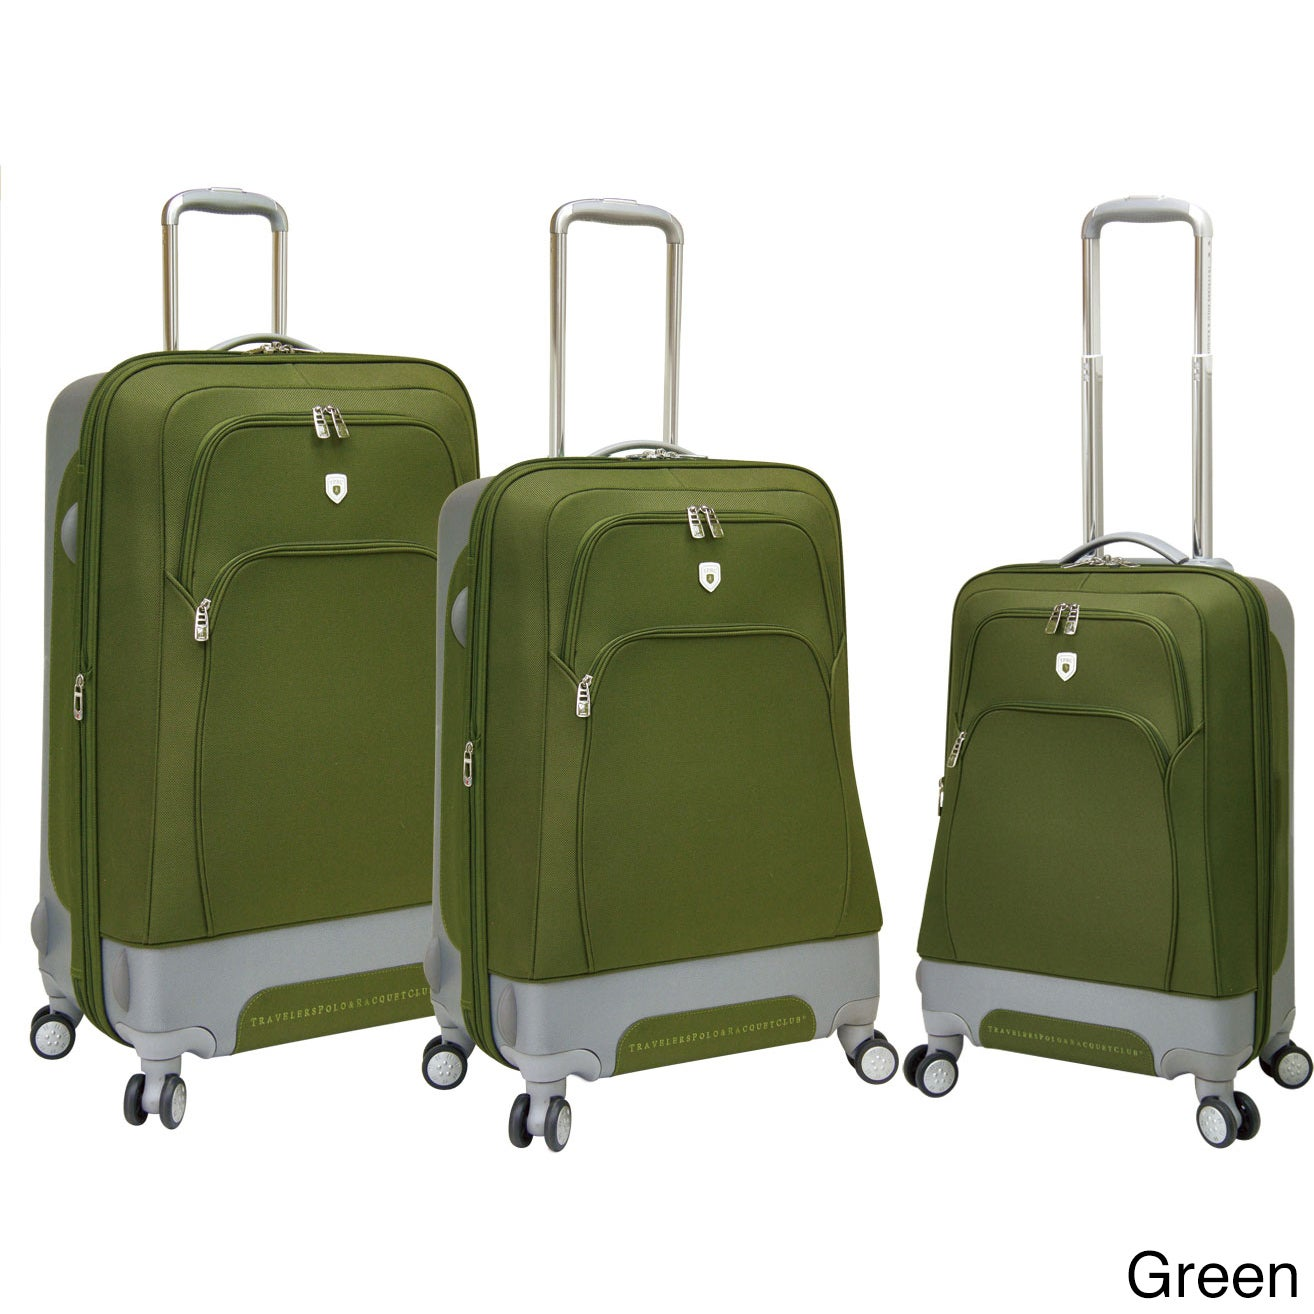 Traveler's Club Luggage Traveler's Club Barcelona Collection 3-piece Expandable Spinner Hybrid Luggage Set at Sears.com